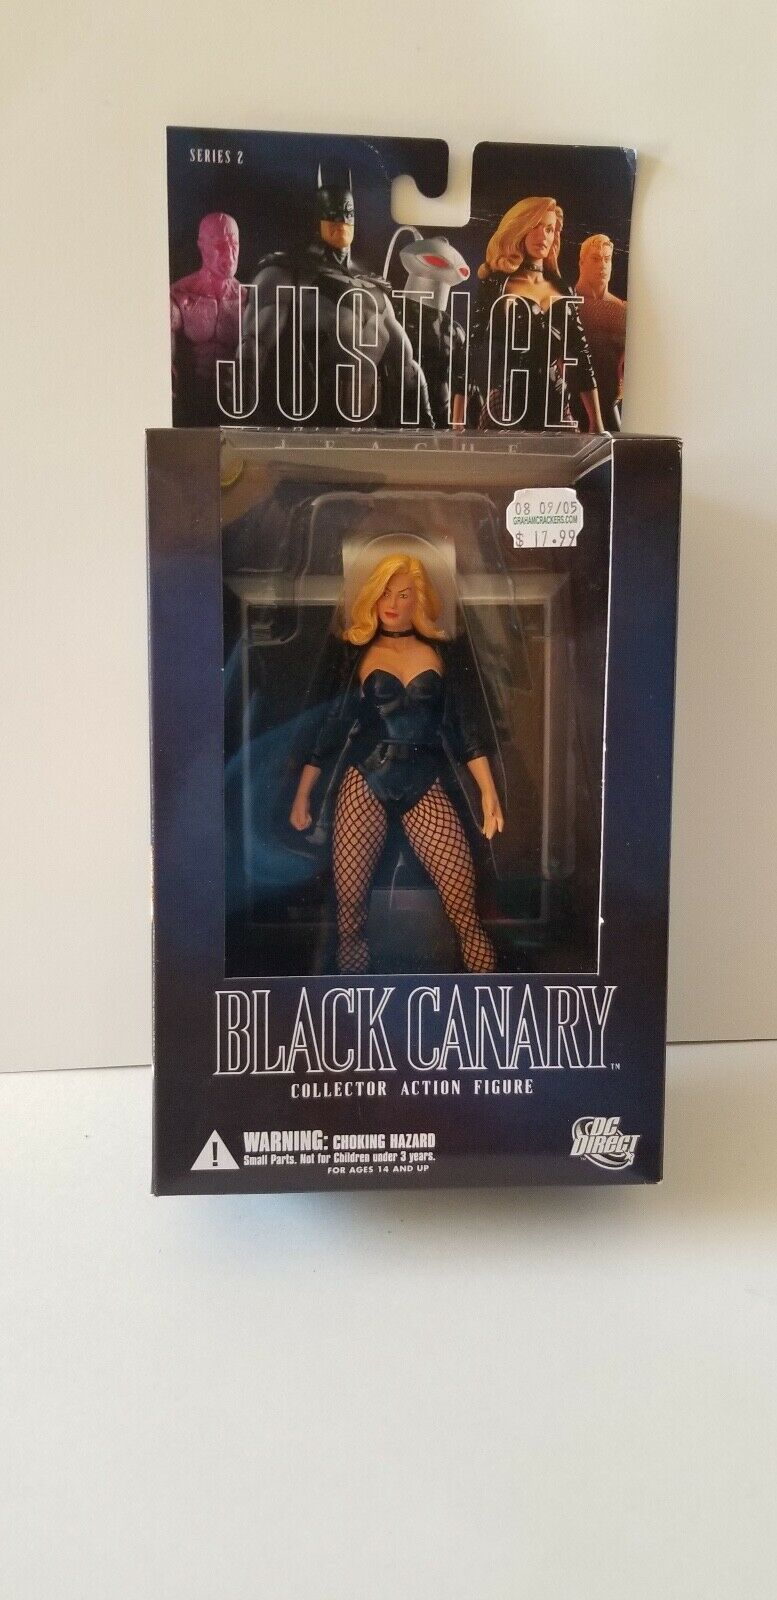 Rare Black Canary Series 2 Justice League Action Figure In Box  - $60.00